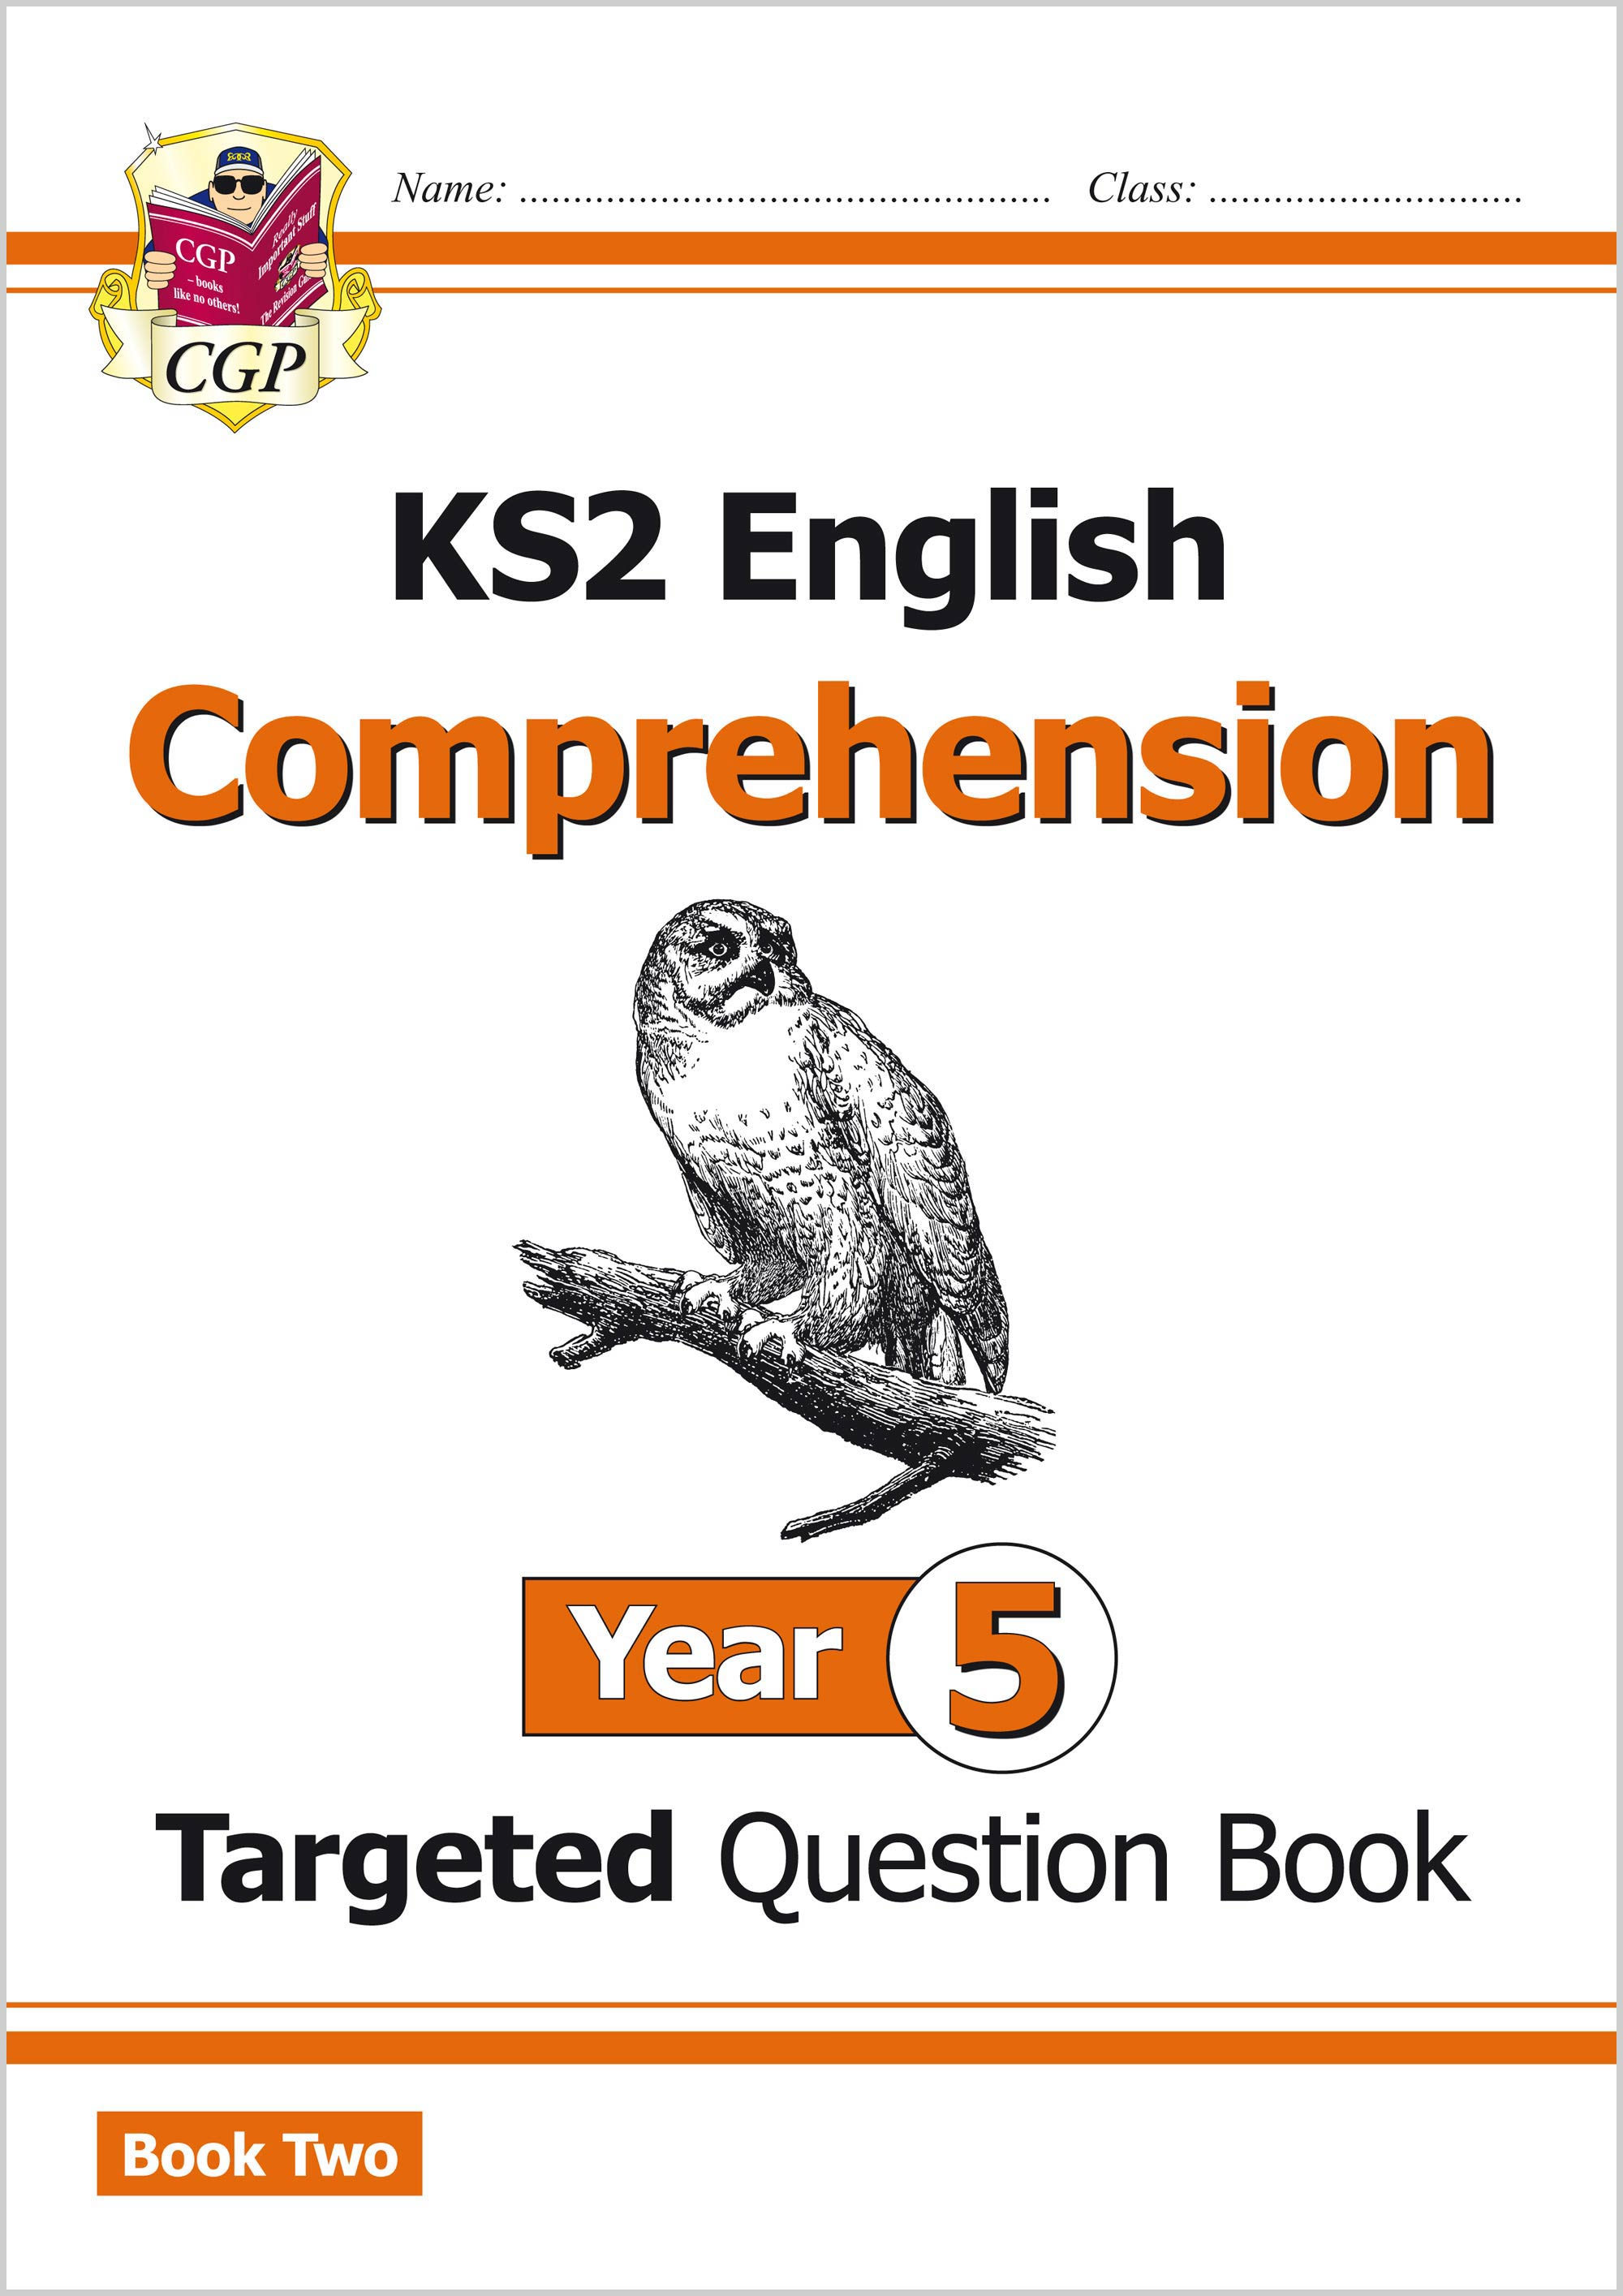 E5CW221 - KS2 English Targeted Question Book: Year 5 Comprehension - Book 2